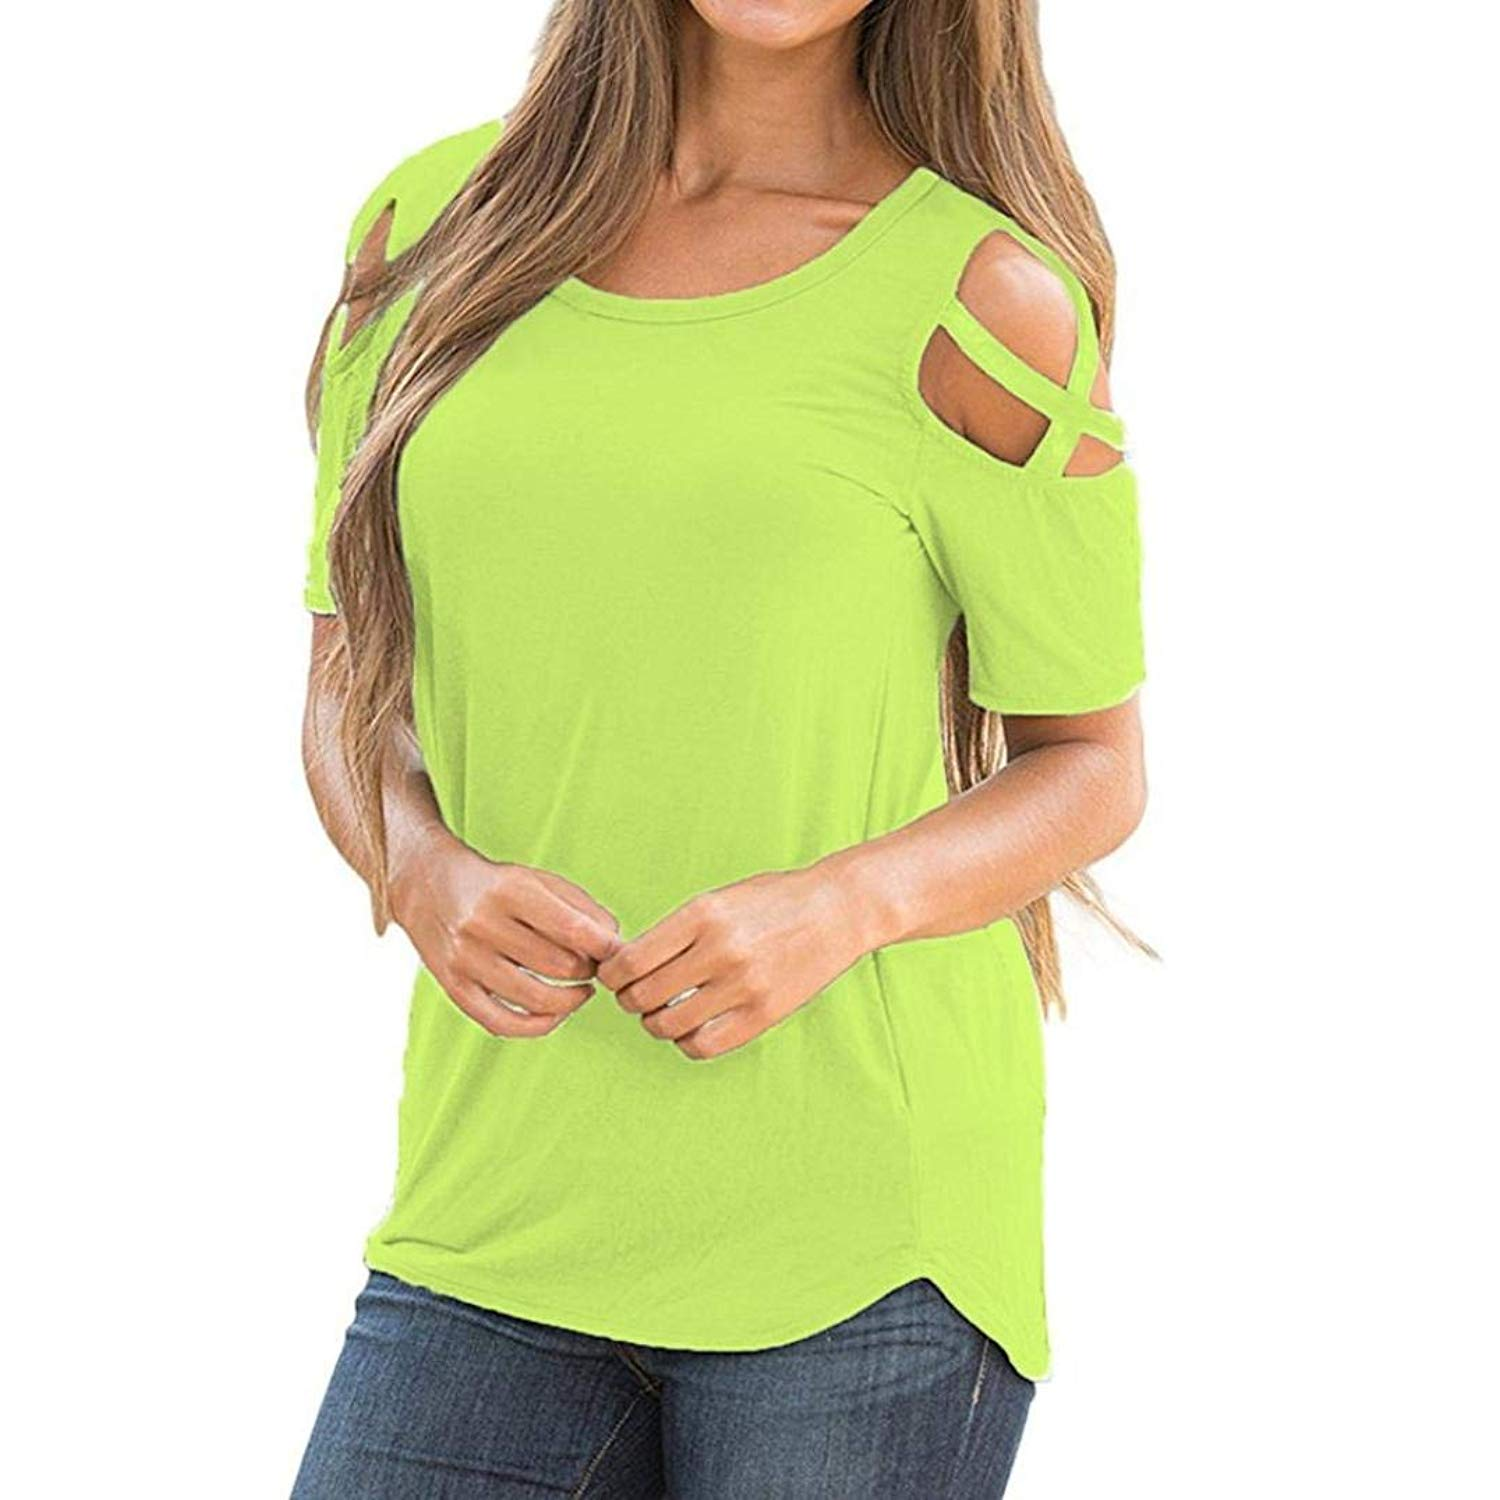 Syban T-Shirt Women Summer Short Sleeve Strappy Cold Shoulder Tops Blouses